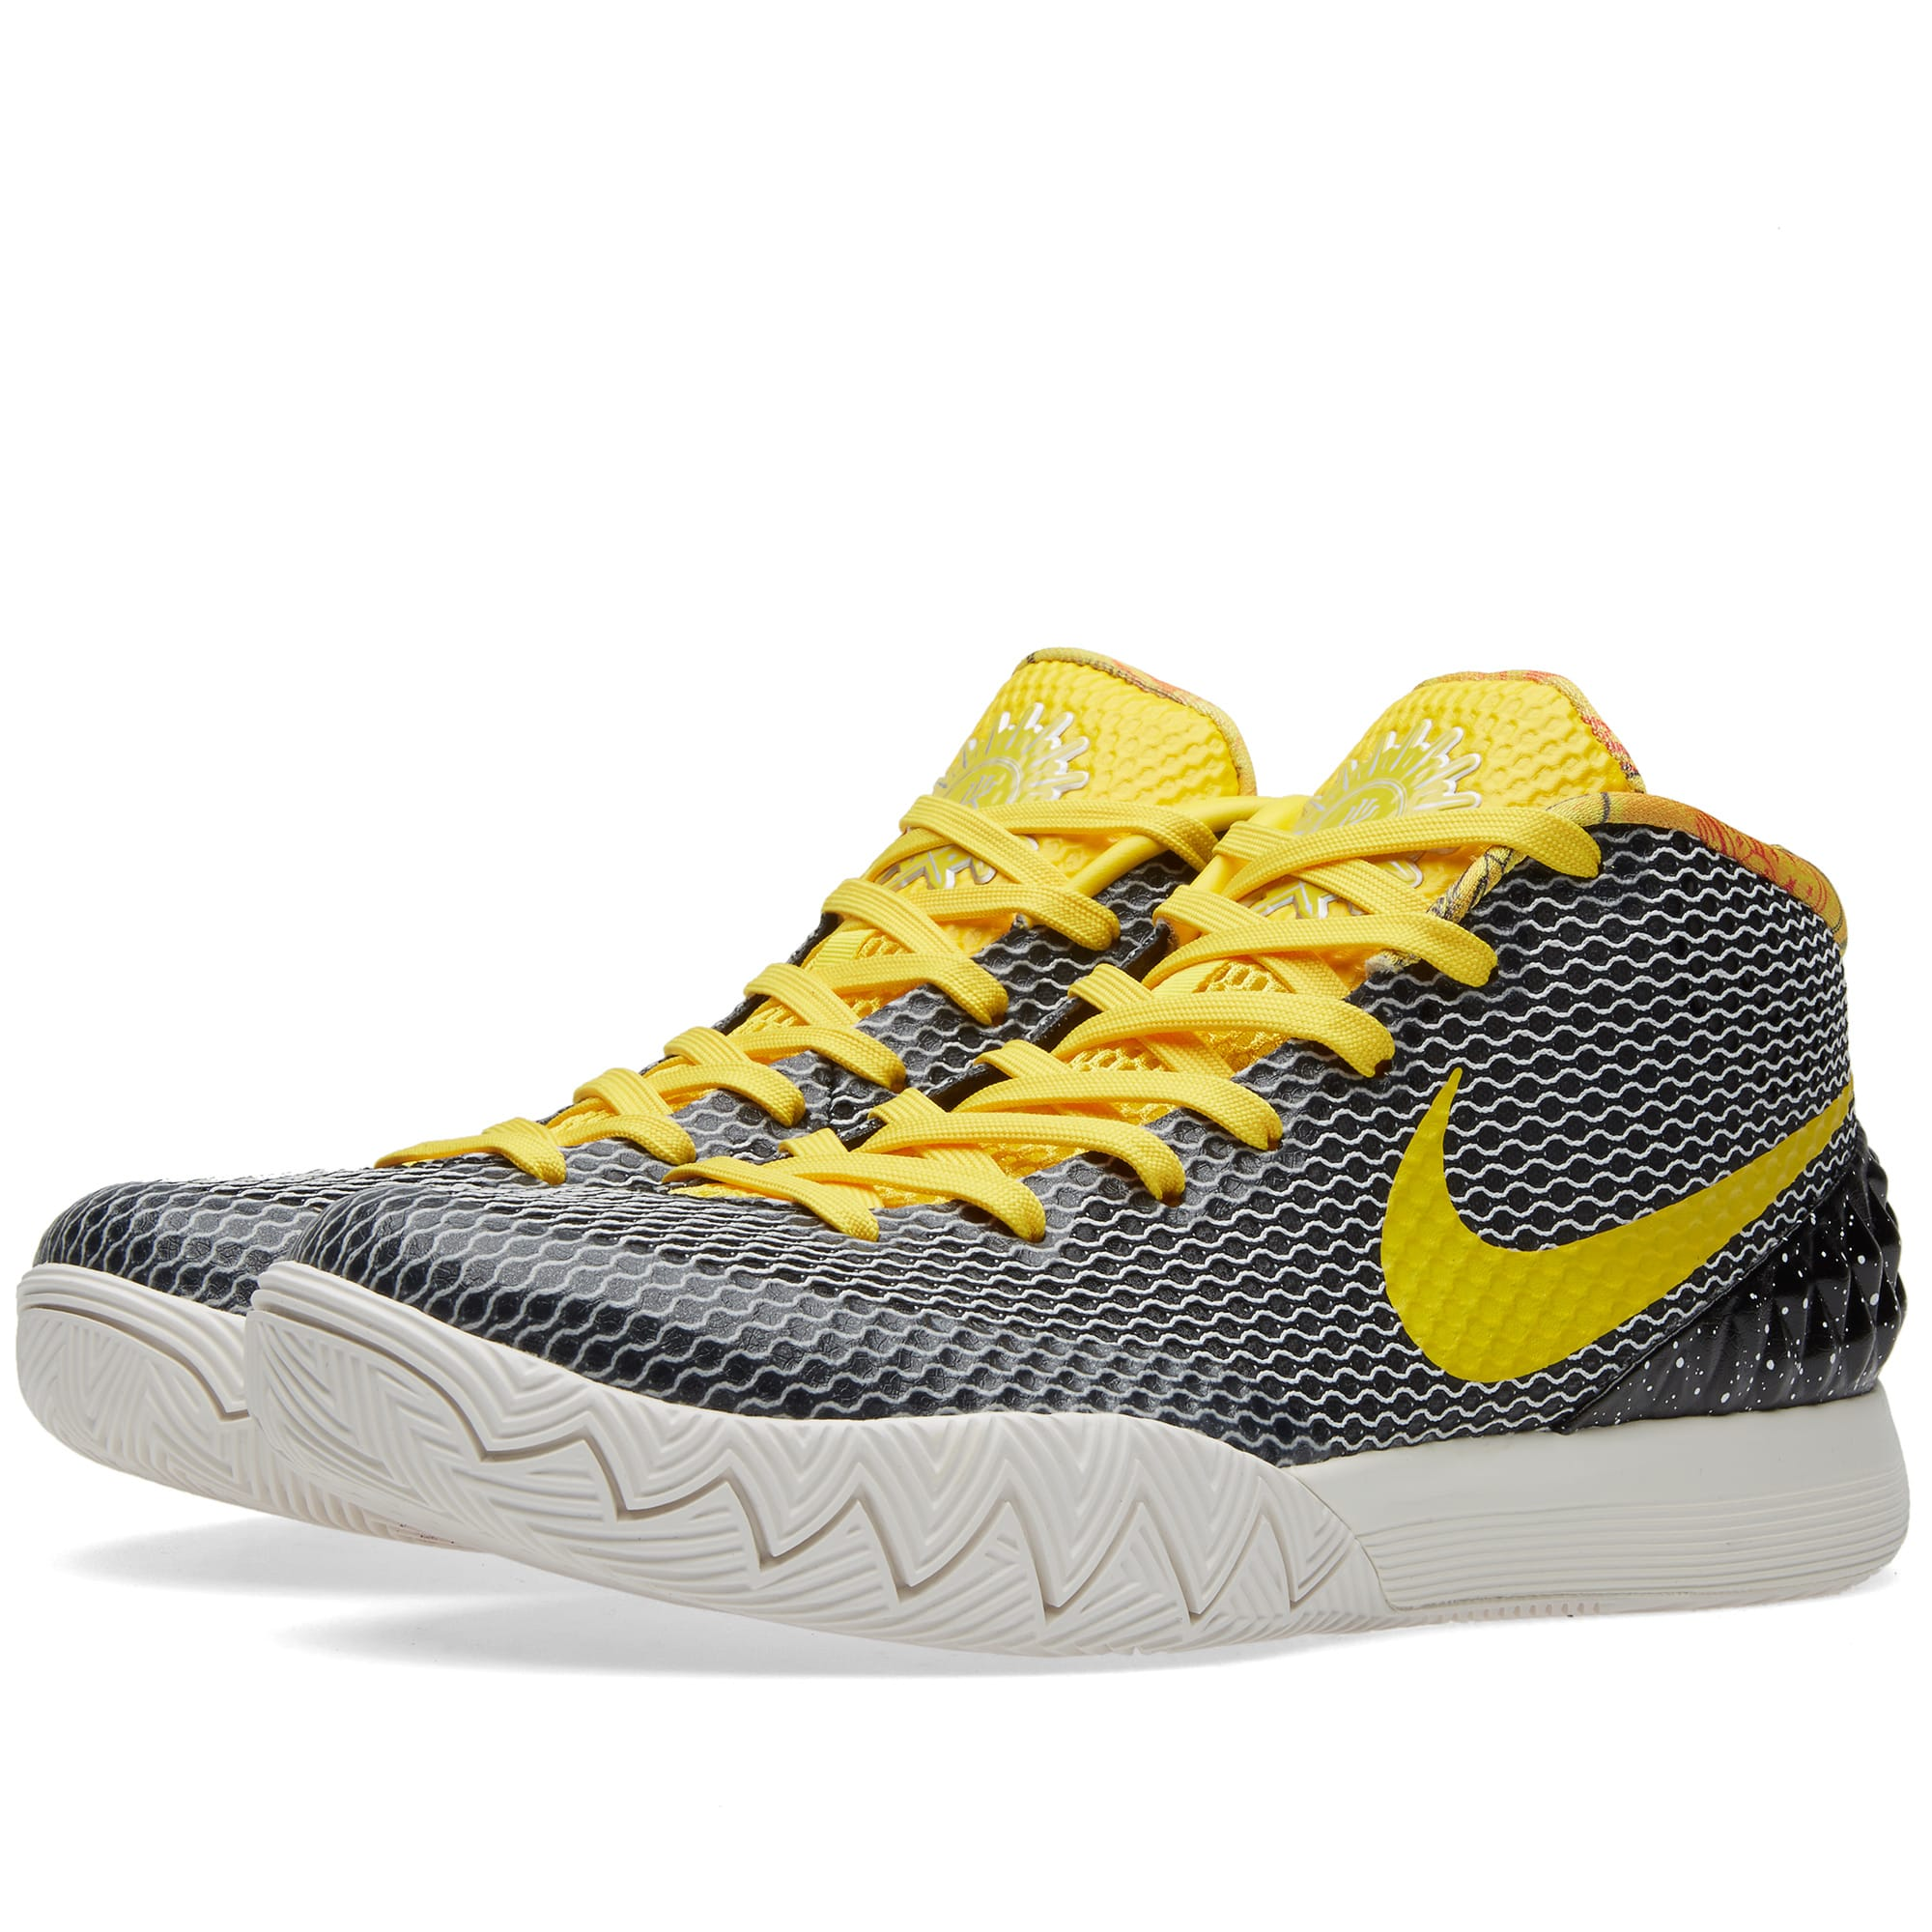 7148befc30b6 Nike Kyrie 1 LTD Black   Tour Yellow